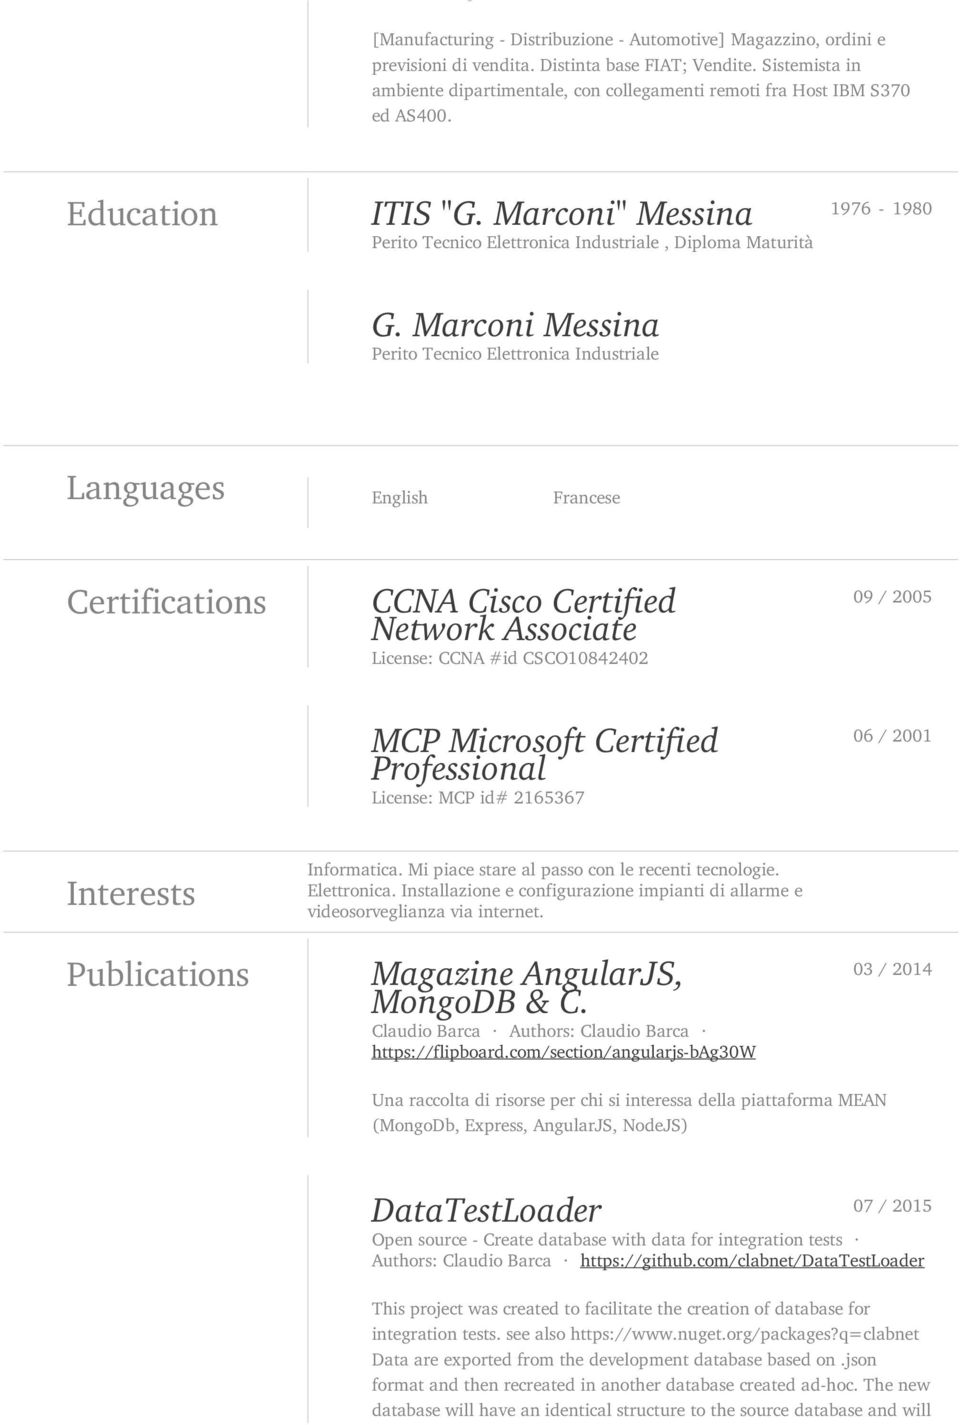 Marconi Messina Perito Tecnico Elettronica Industriale Languages English Francese Certifications CCNA Cisco Certified Network Associate License: CCNA #id CSCO10842402 09 / 2005 MCP Microsoft